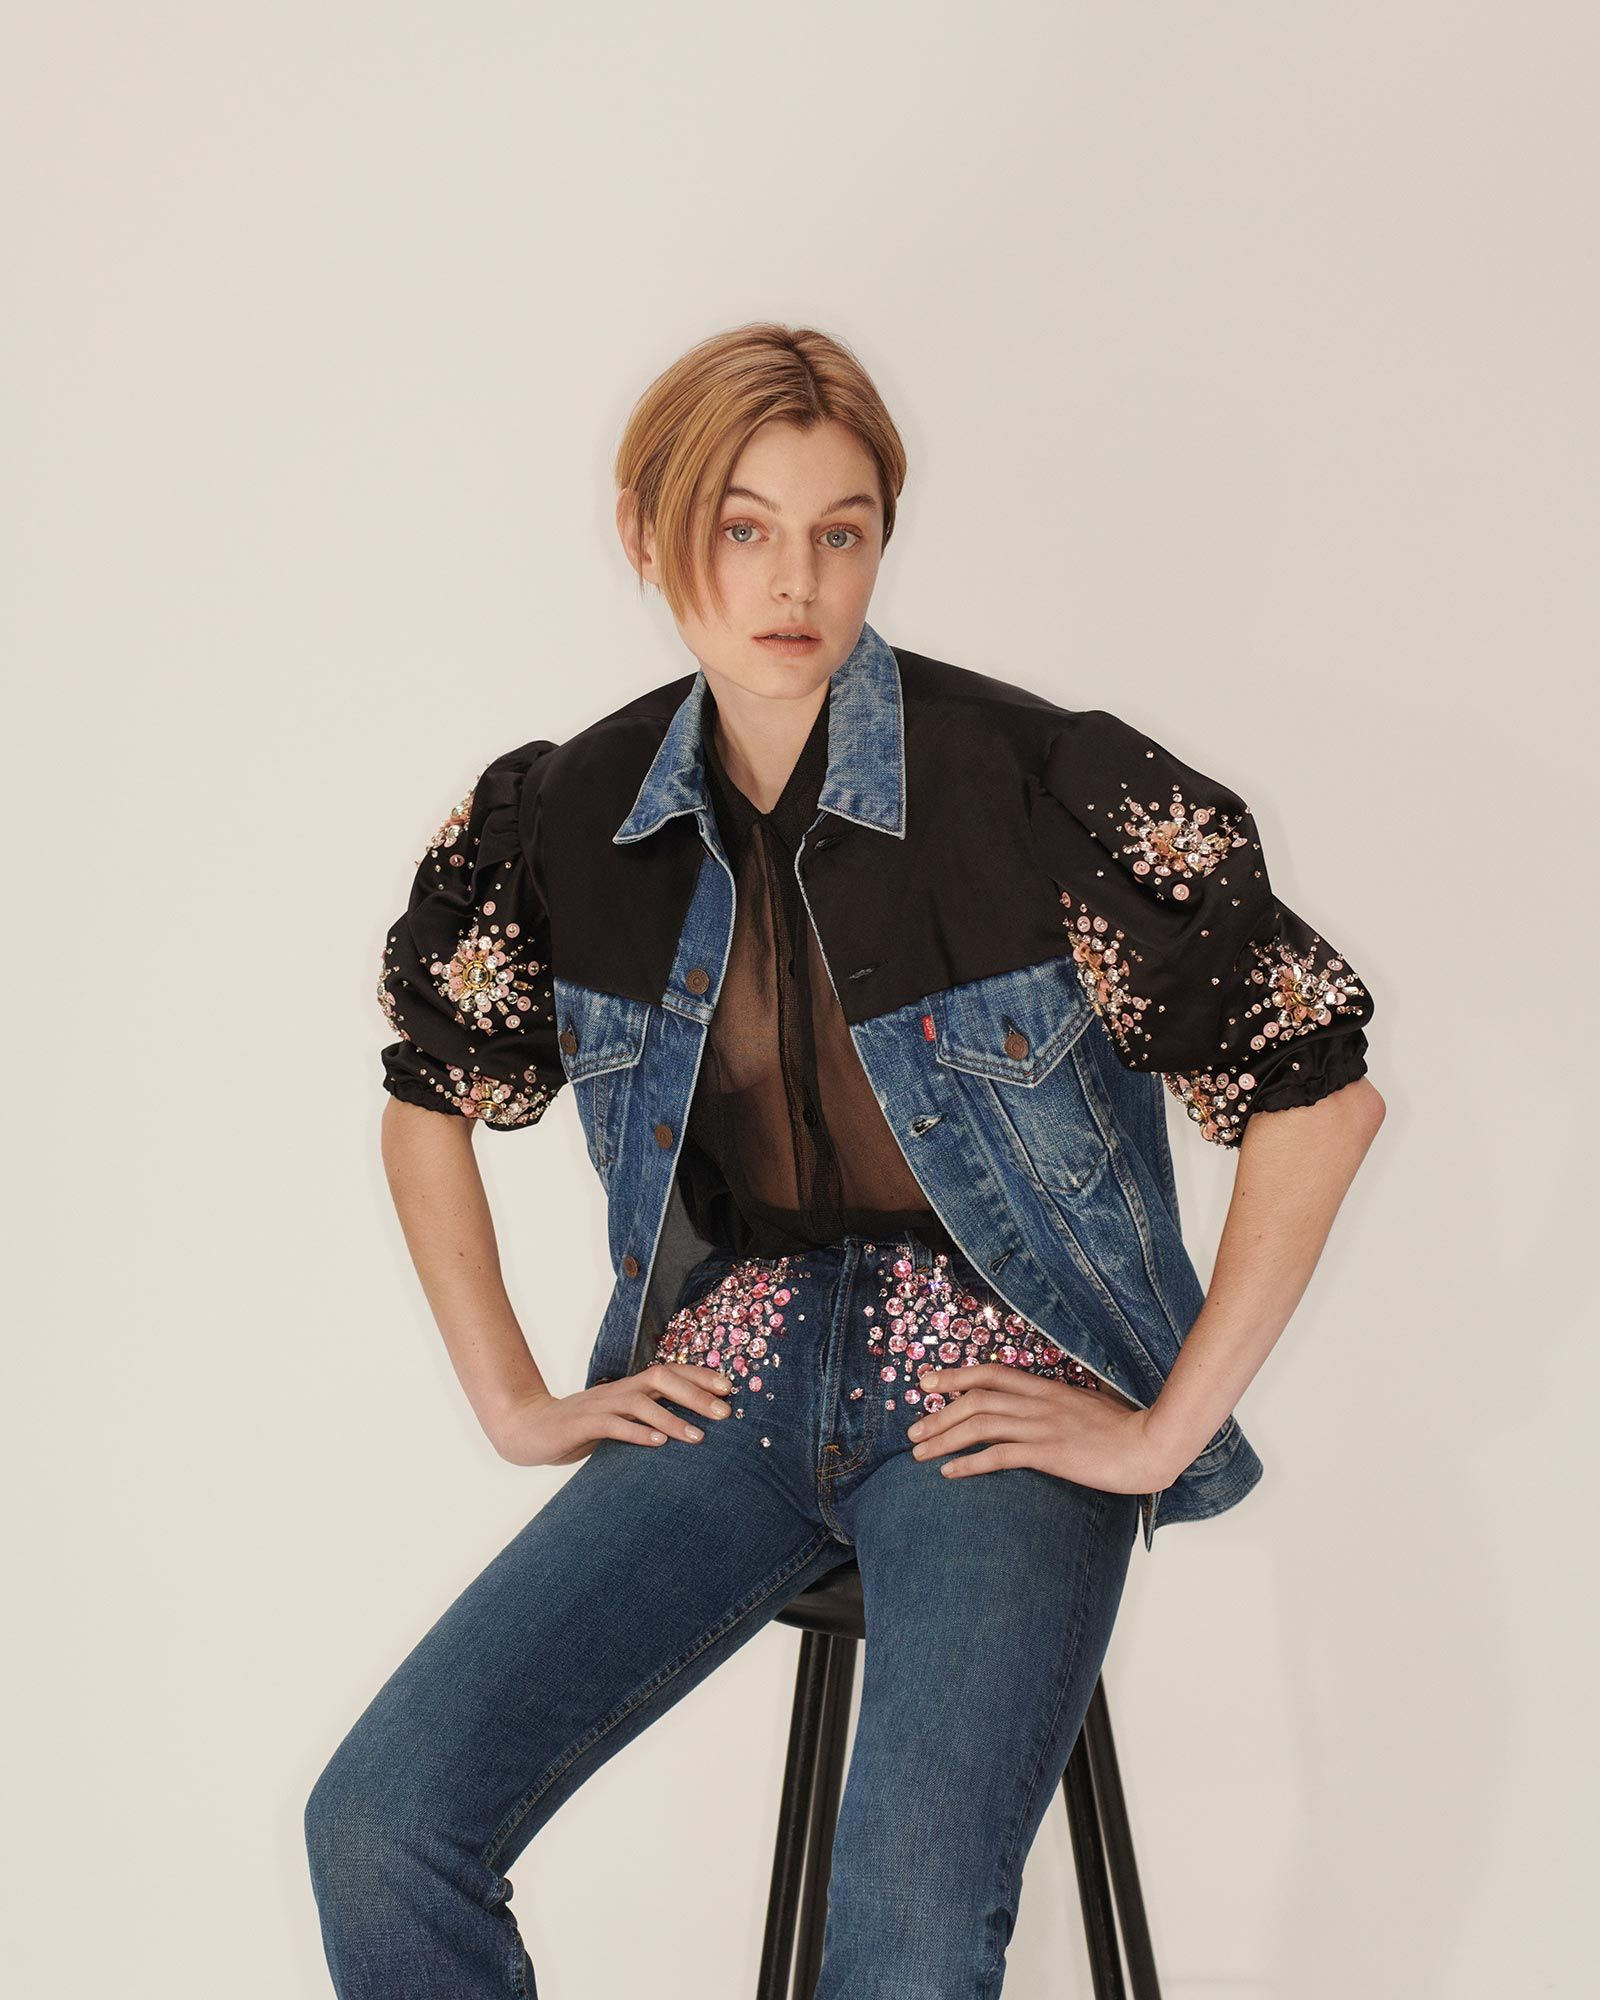 Of Course Miu Miu's Take on Upcycled Denim Is Super Chic